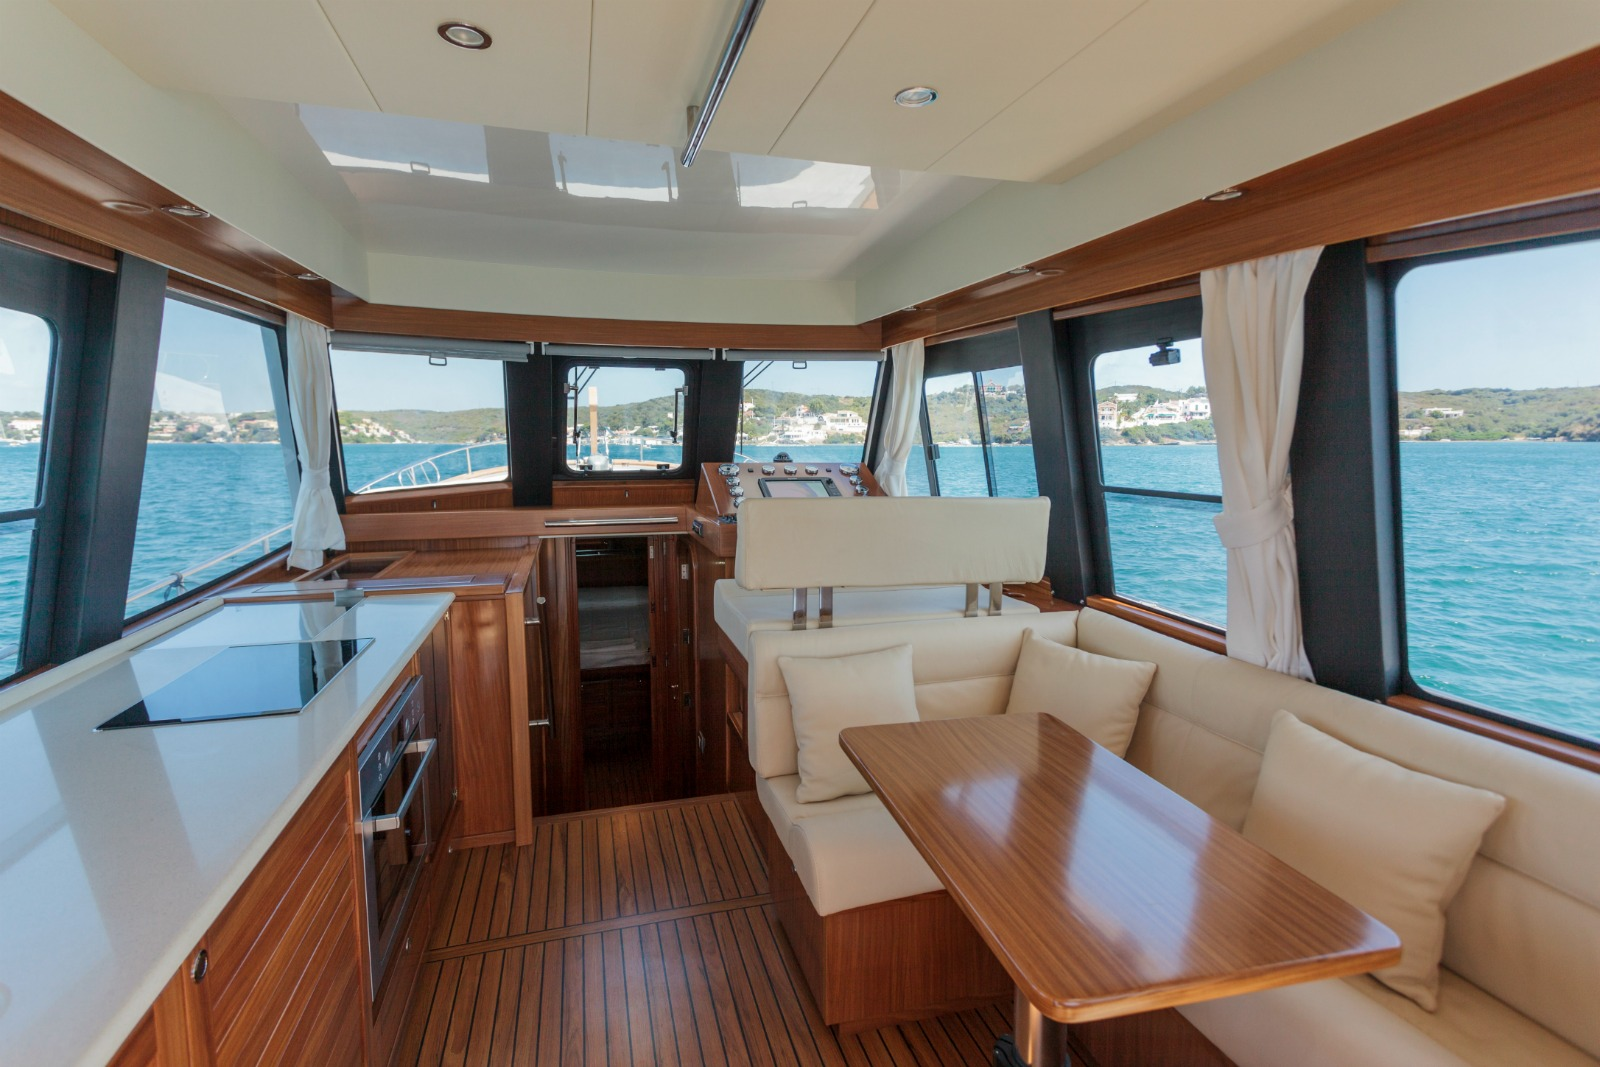 Minorca Islander 42 flybridge yacht for sale - Interior